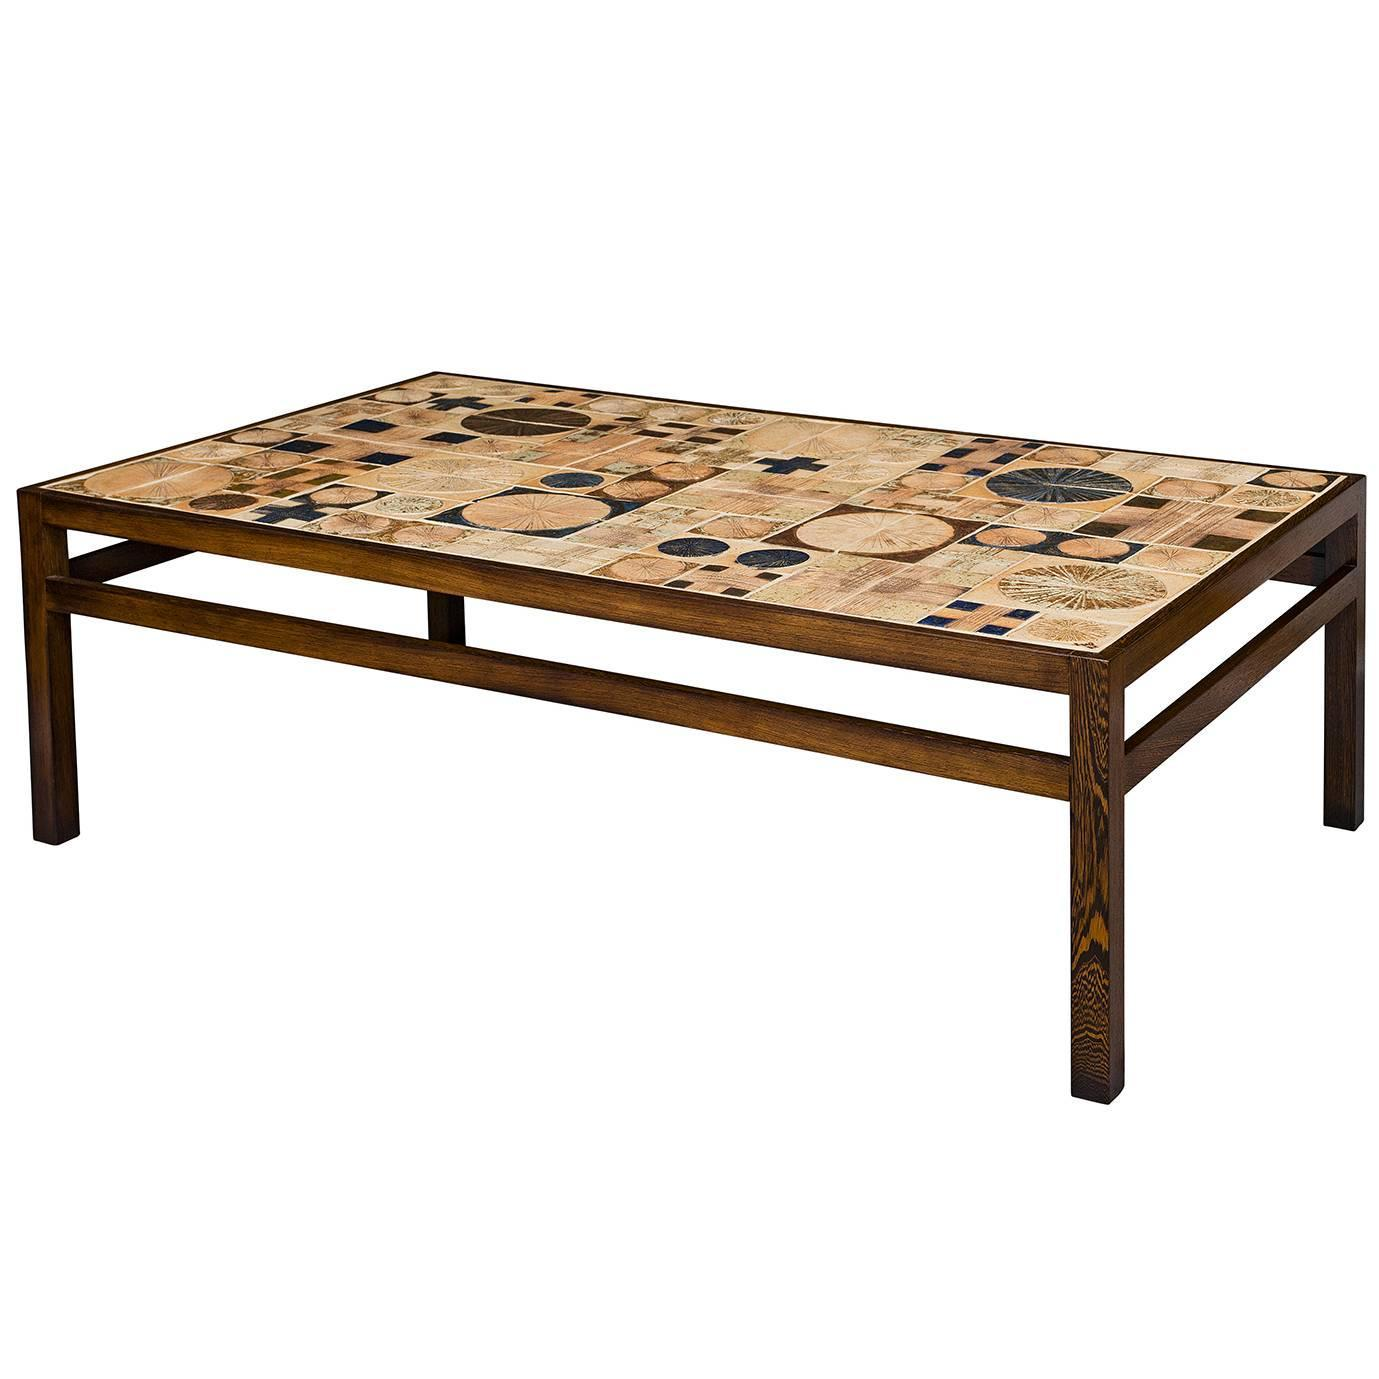 tue poulsen tile coffee table for sale at 1stdibs